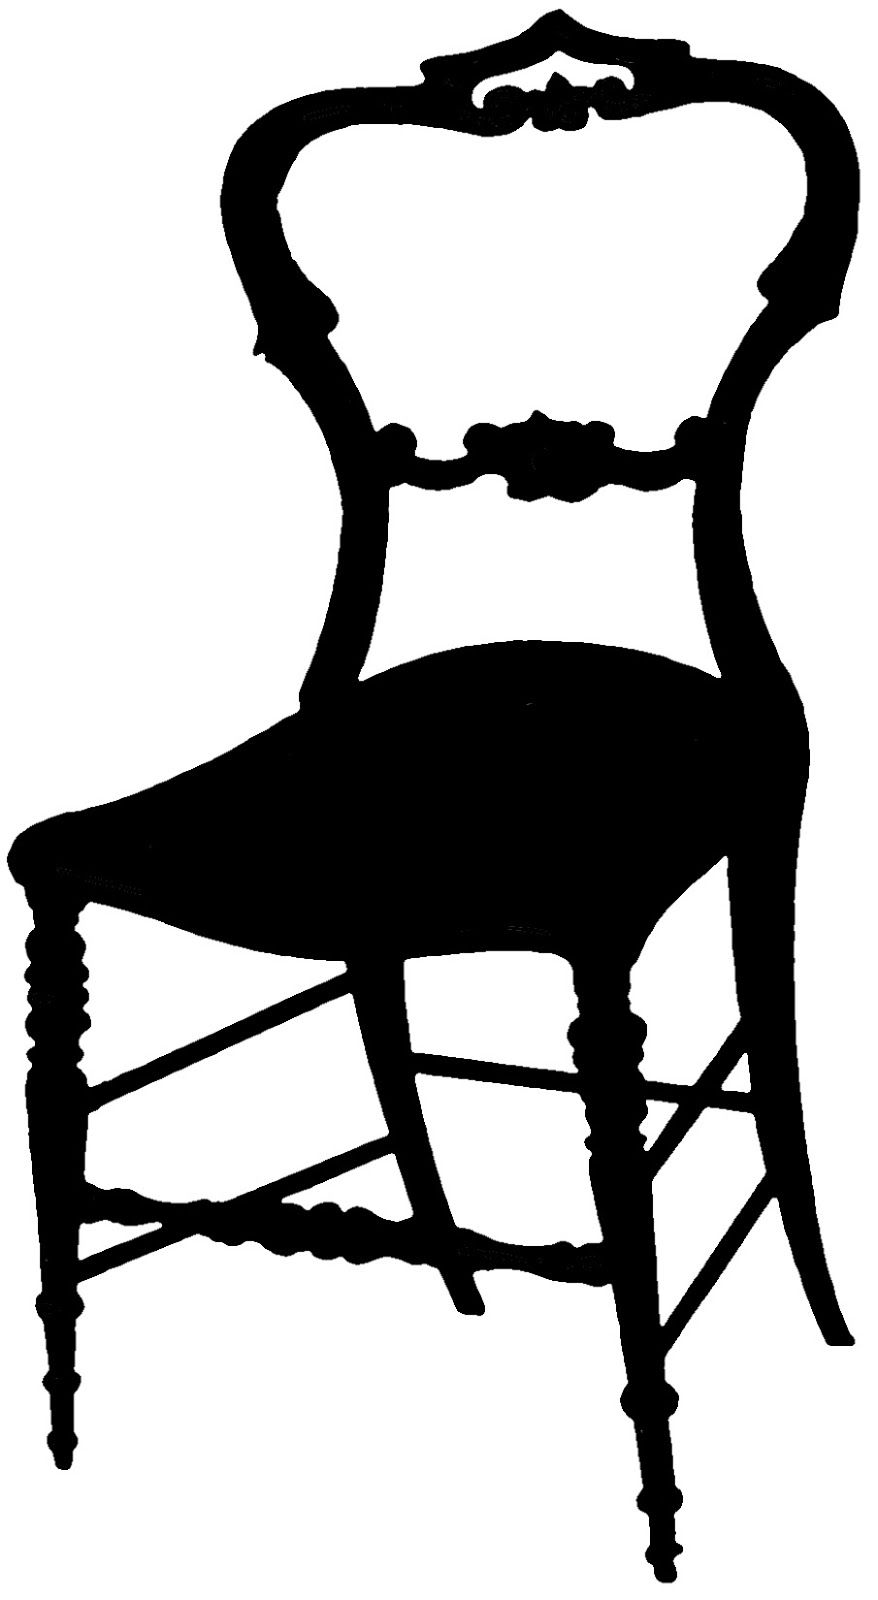 Vintage Graphic Silhouette Frenchy Chair The Graphics Fairy Clip Art Vintage Silhouette Art Vintage Graphics